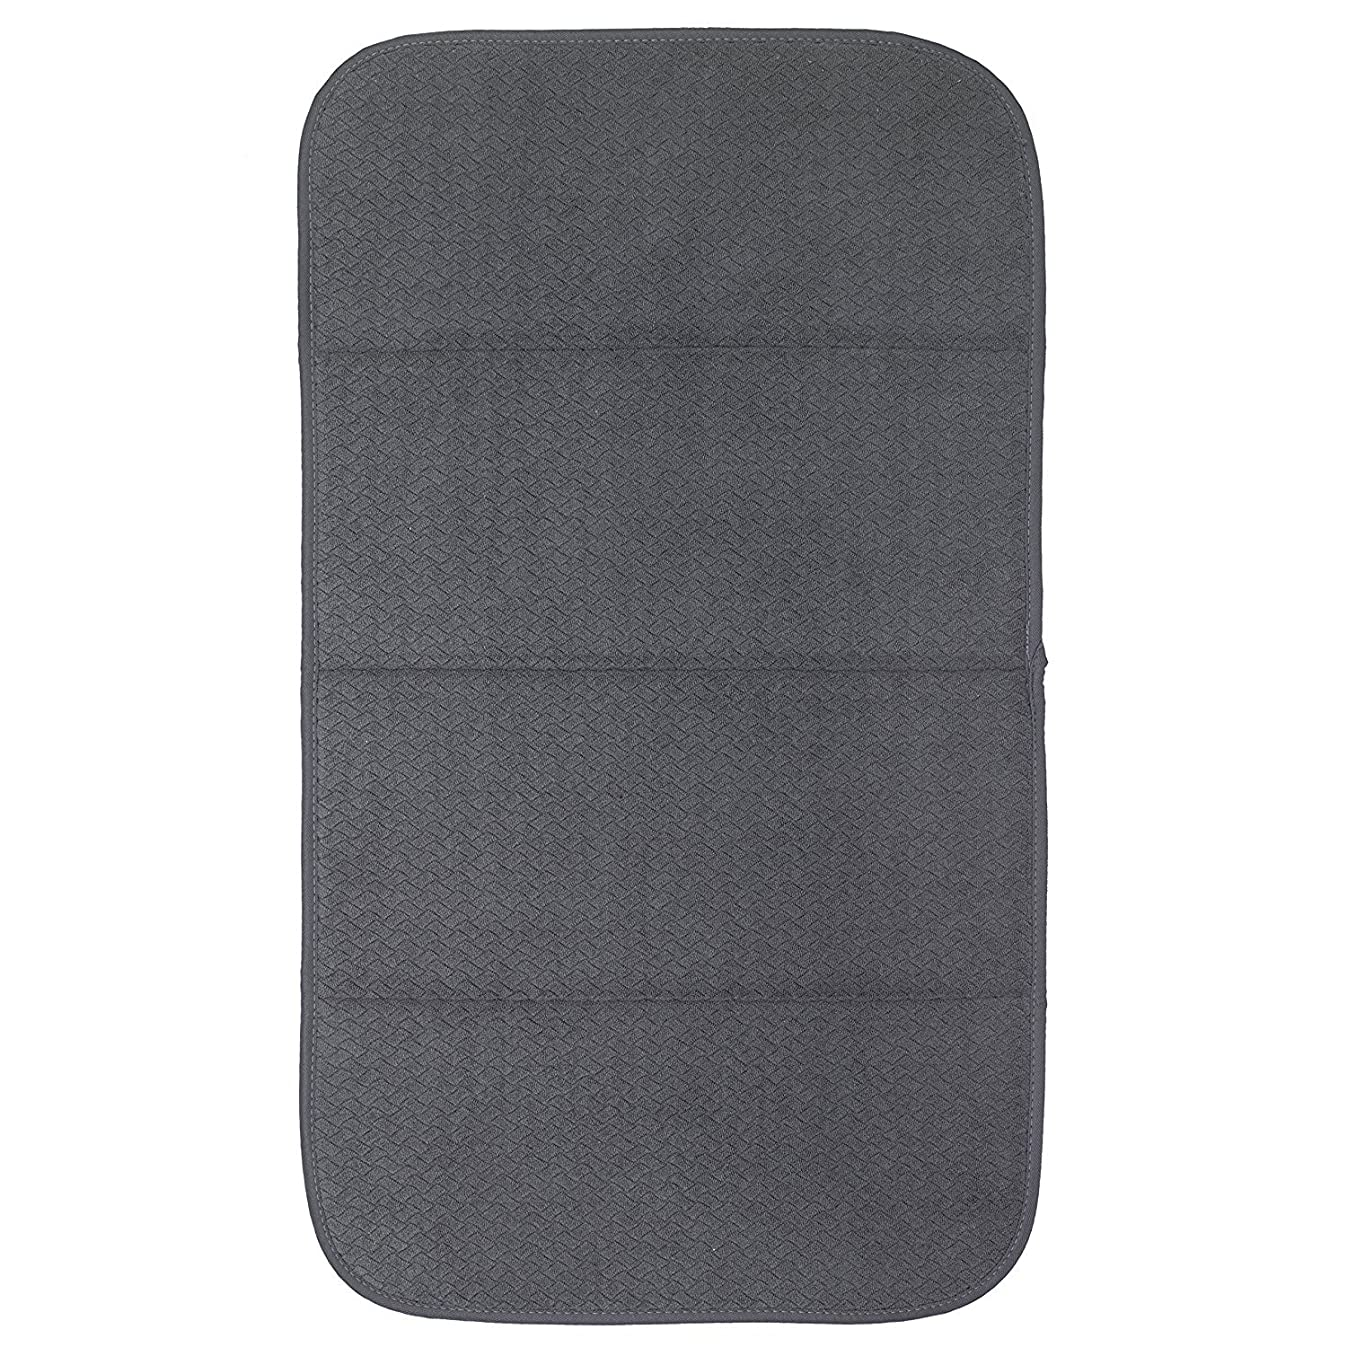 All Clad Textiles Reversible Fast-Drying Mat, 16-Inch x 28-Inch, Pewter